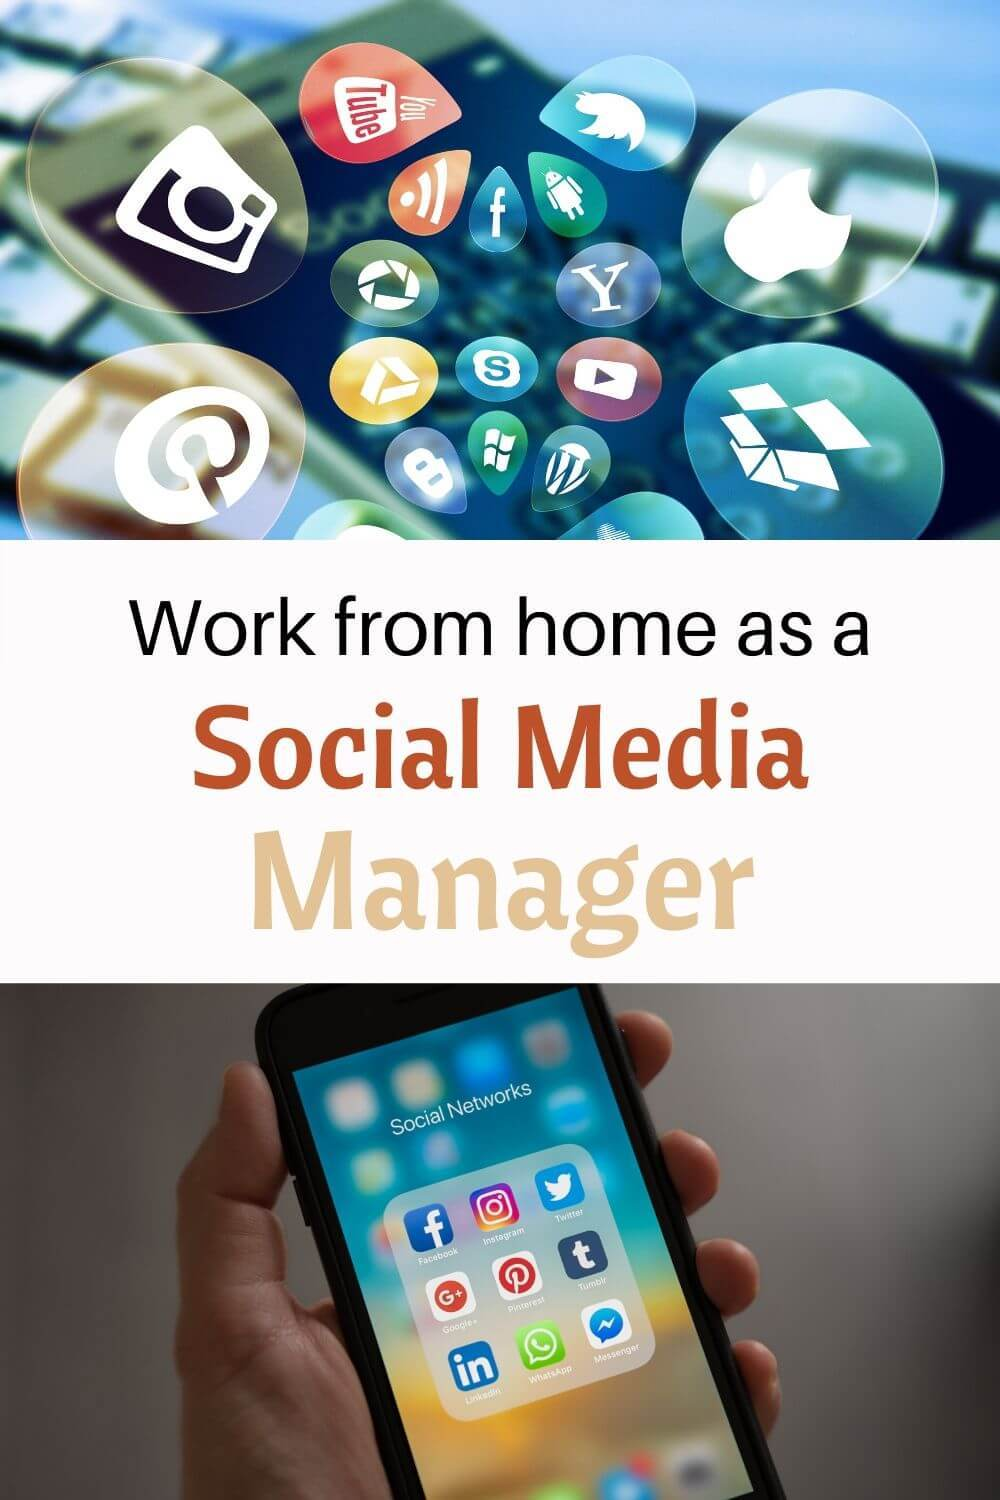 Work from home as a social media manager